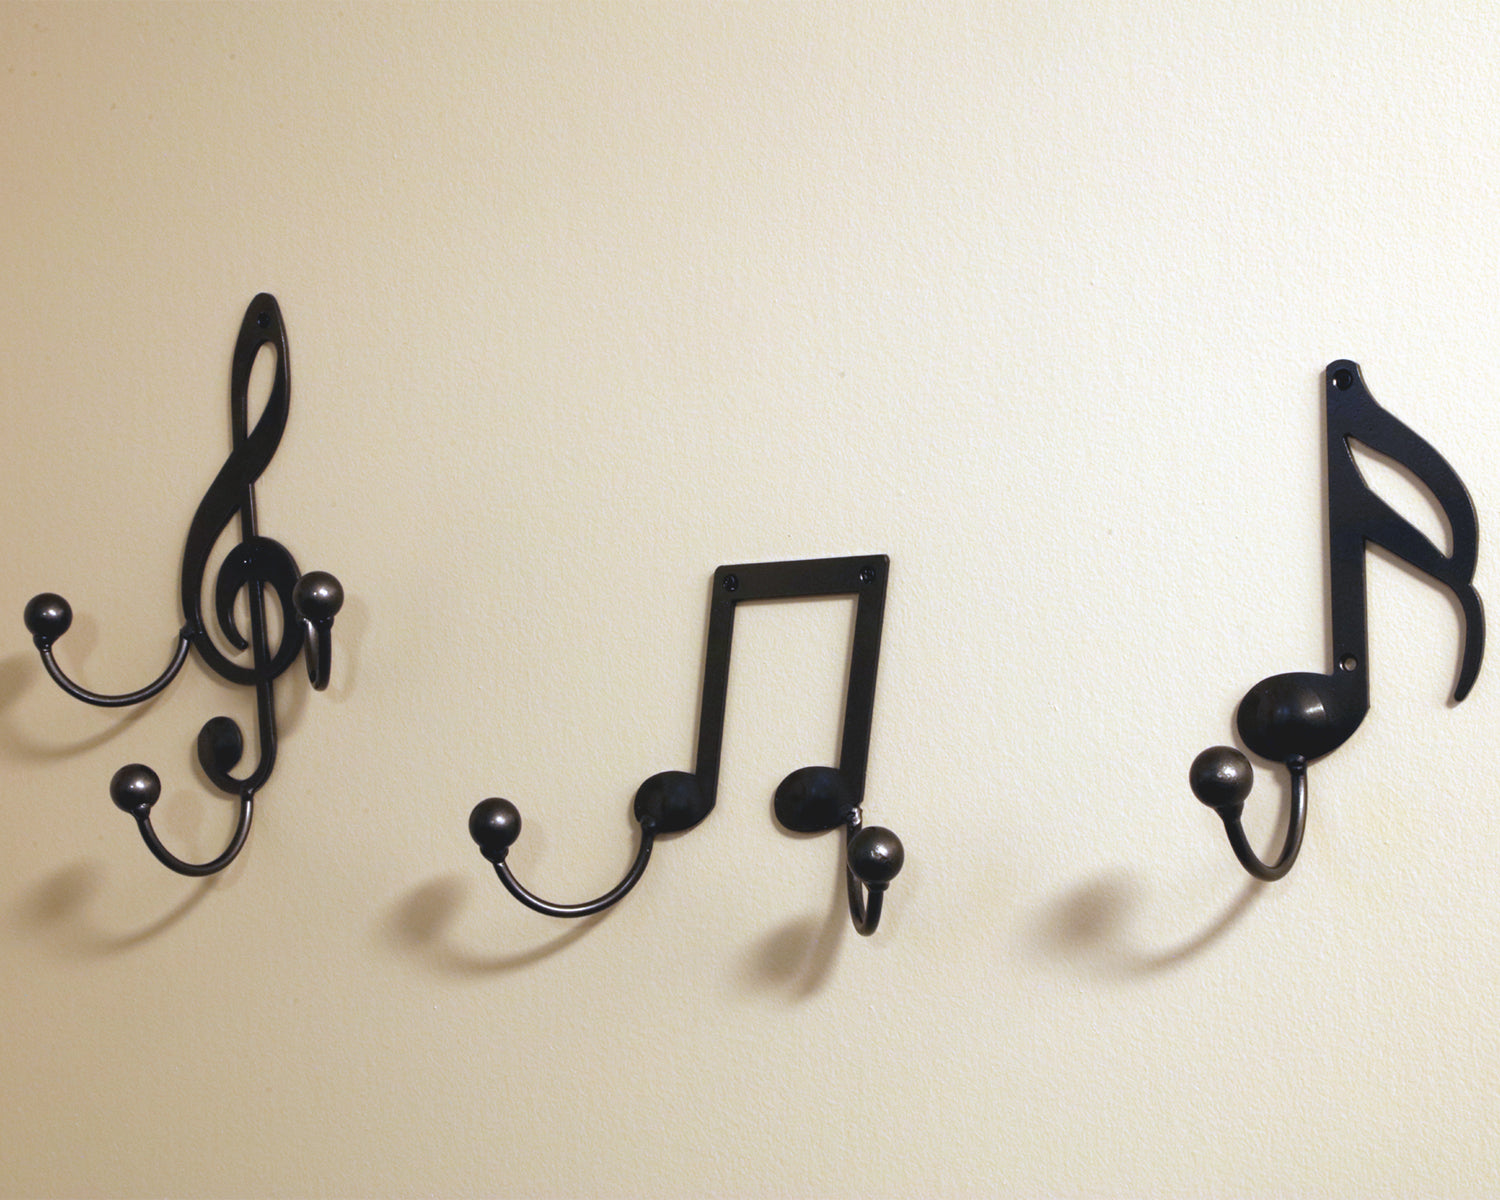 Treble Clef Hook Music Note Metal Wall Art Hanger: Musical Notes